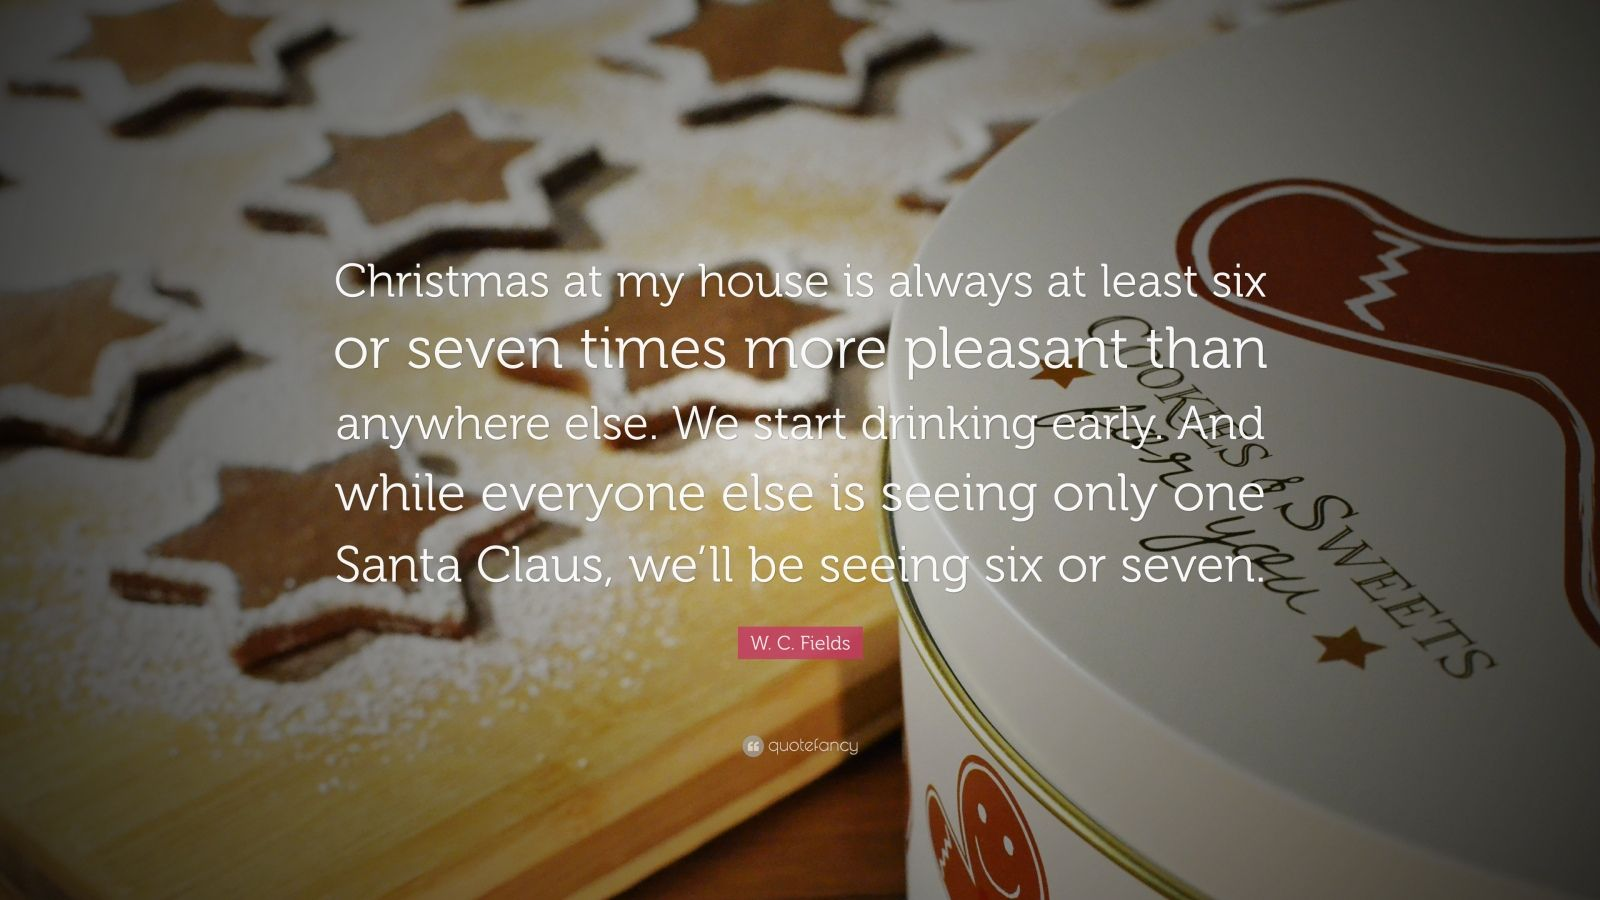 """W. C. Fields Quote: """"Christmas at my house is always at least six or seven times more pleasant than anywhere else. We start drinking early. And while everyone else is seeing only one Santa Claus, we'll be seeing six or seven."""""""